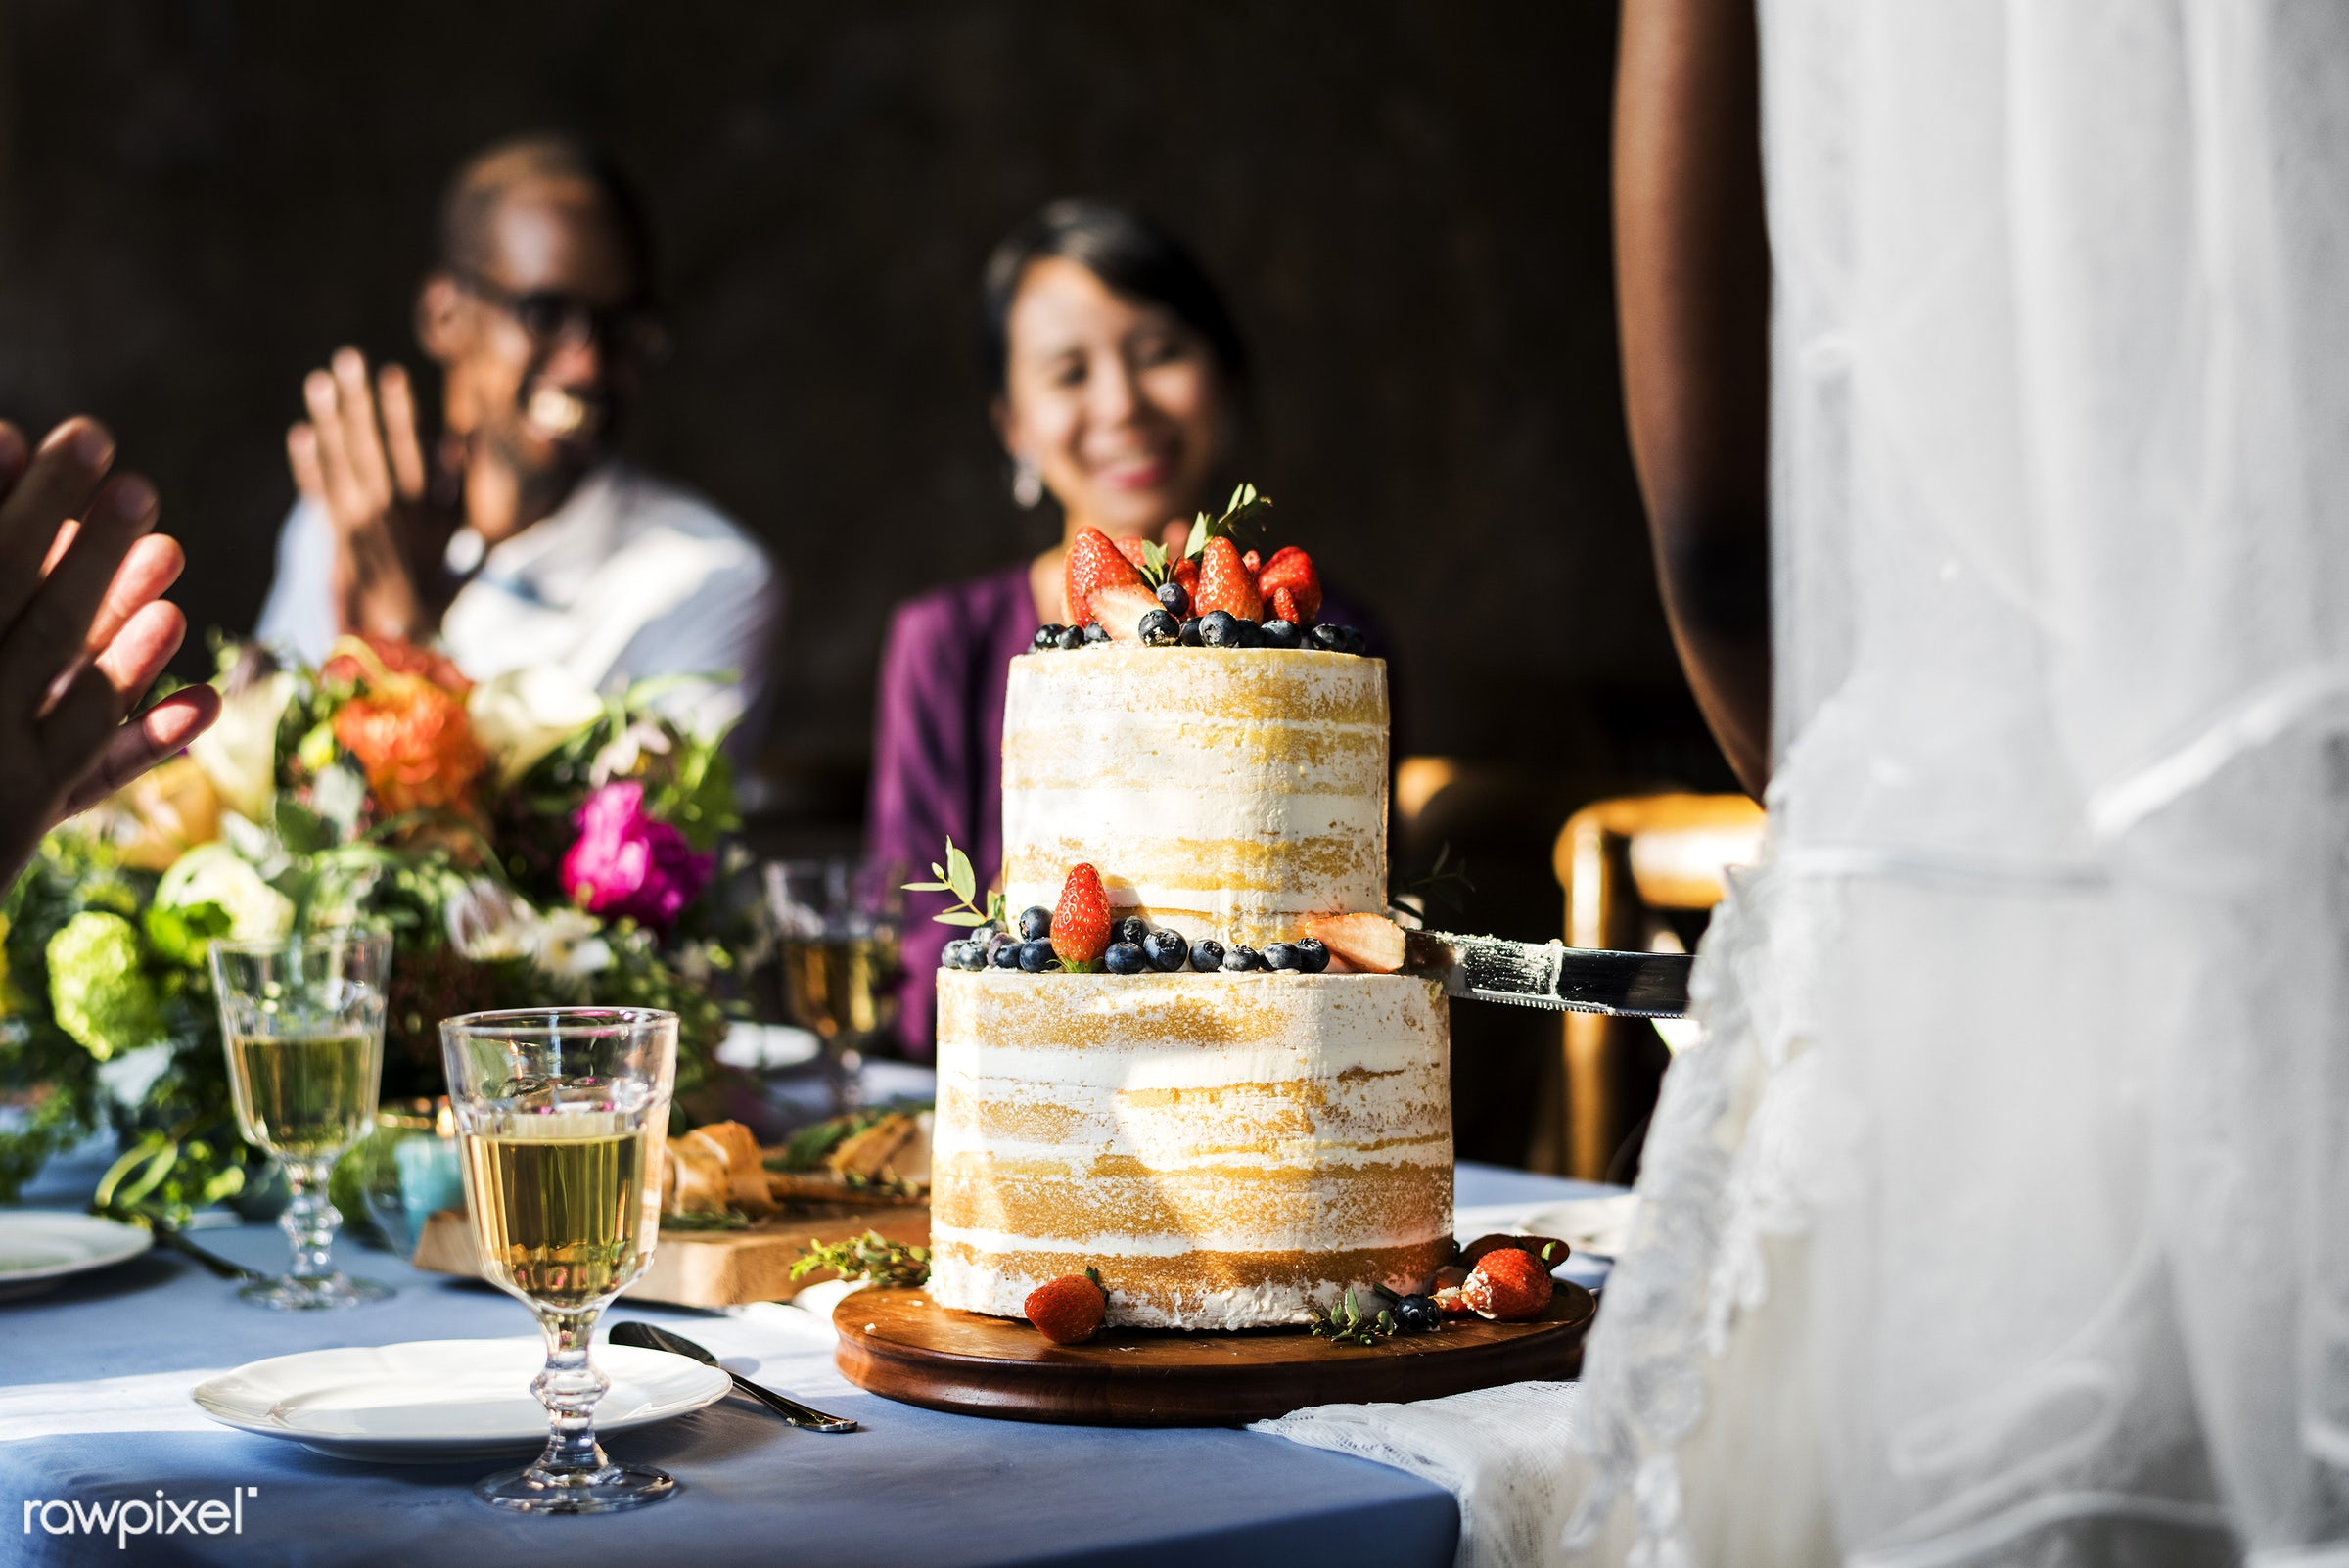 occasion, guests, congratulations, people, together, love, married, friends, congrats, hands, gather, event, couple, bride,...